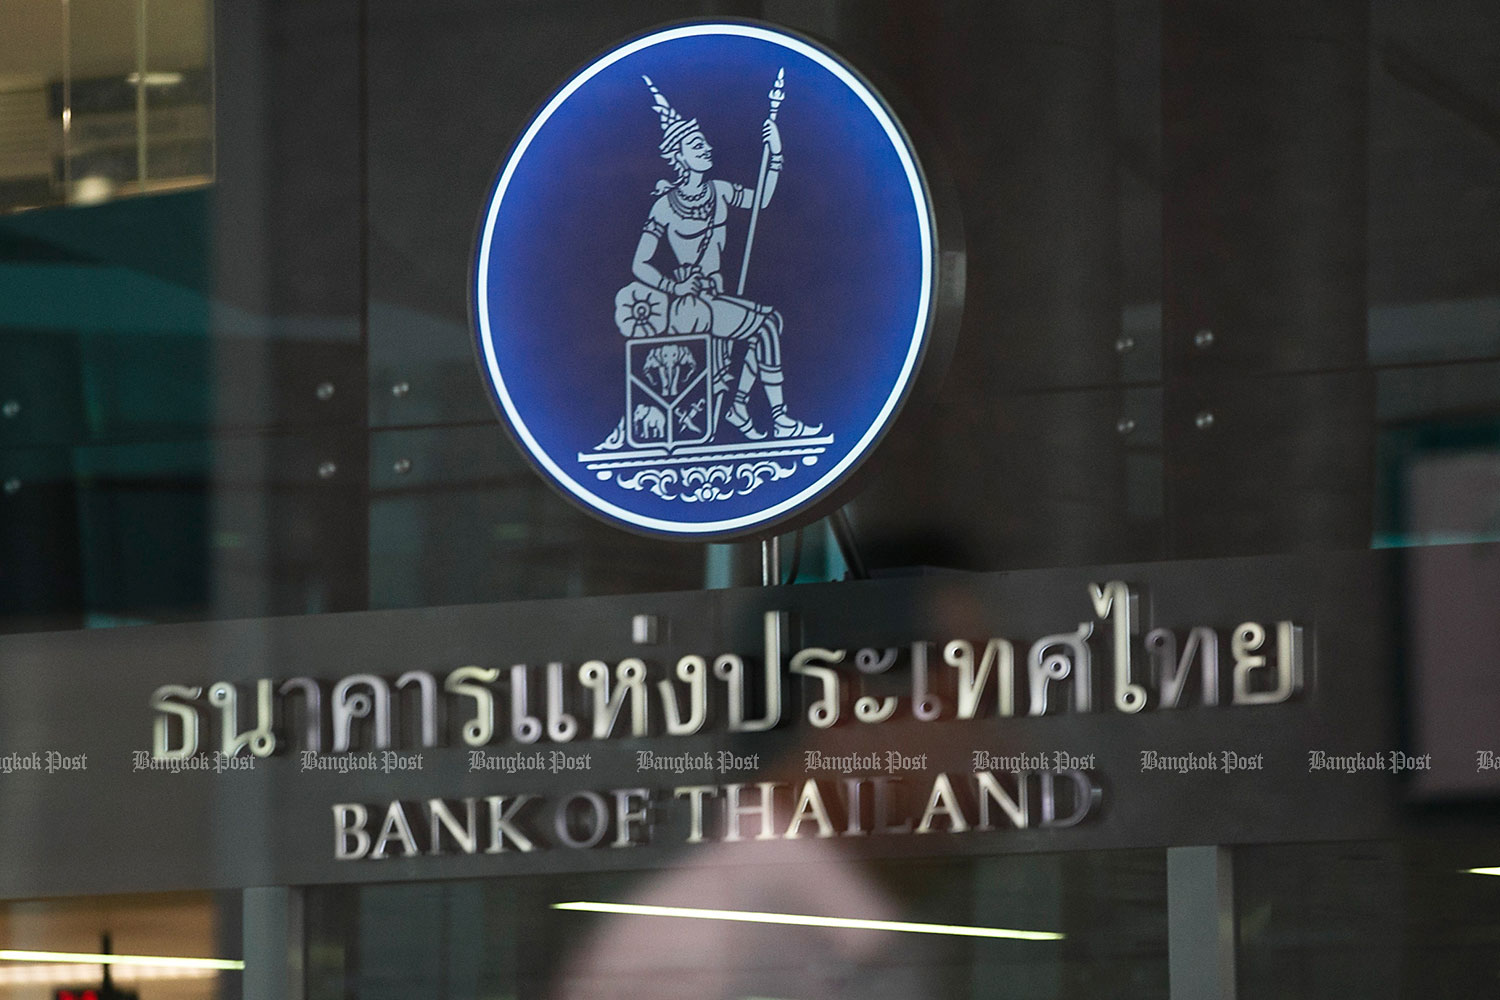 The Bank of Thailand has announced a project to develop a prototype payment system for businesses using the Central Bank Digital Currency. (Bangkok Post photo)